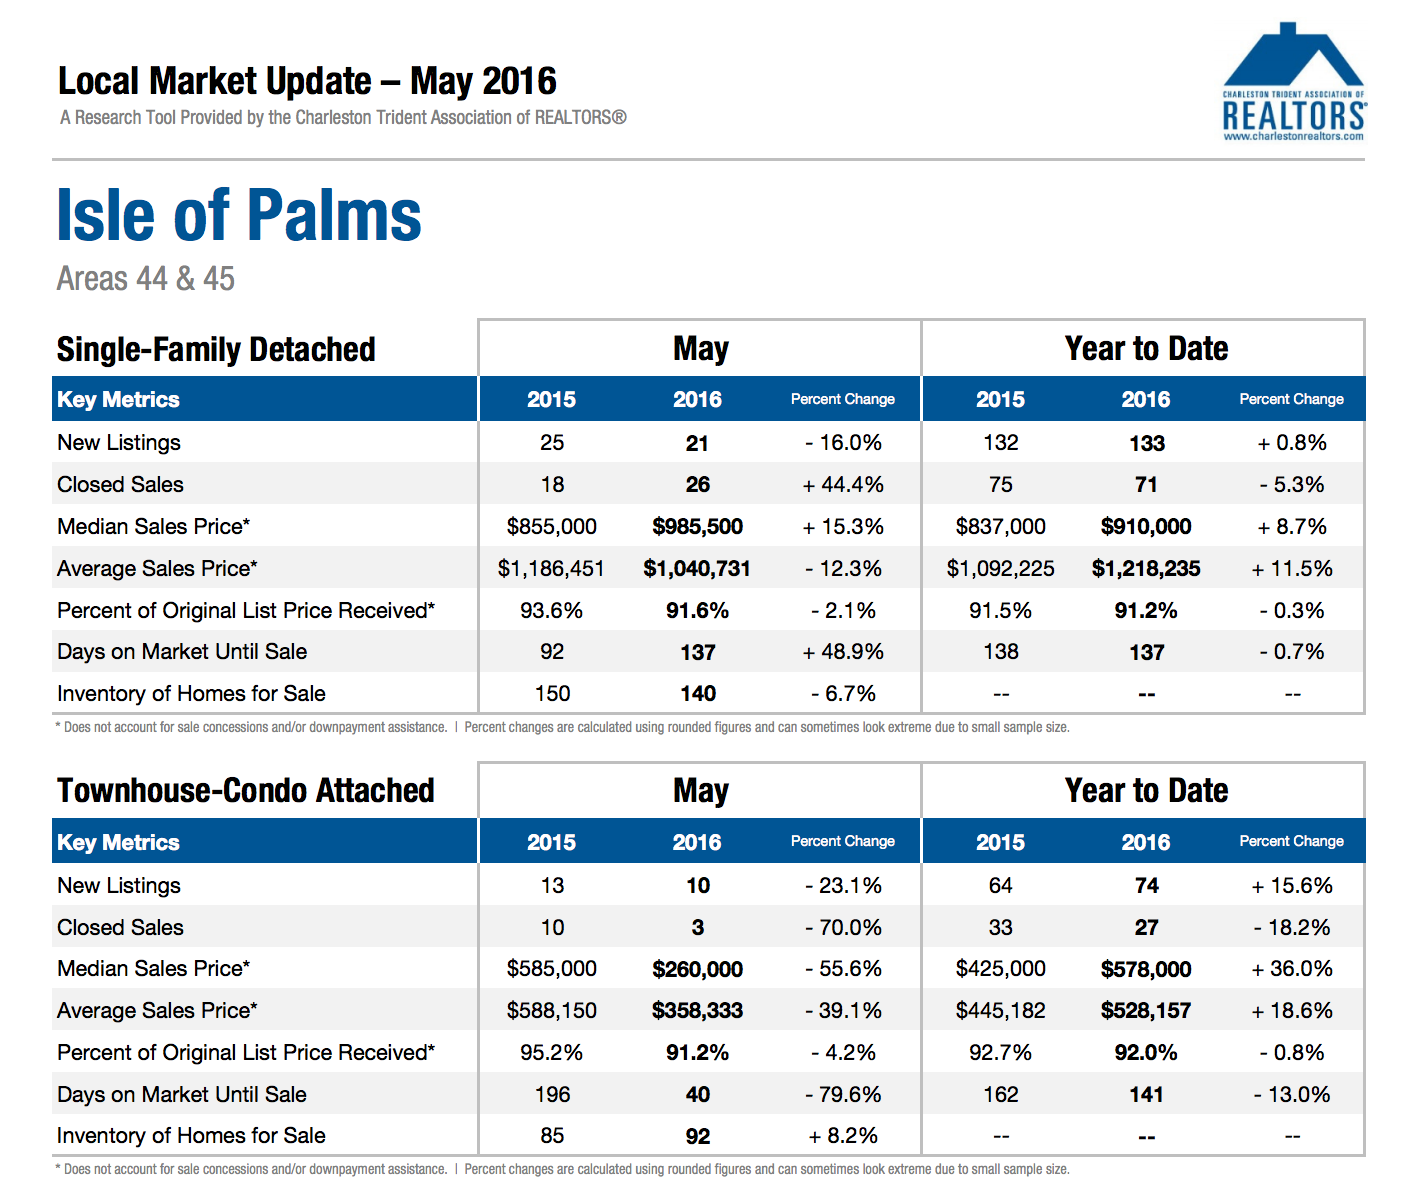 Isle of Palms Market Update May 2016